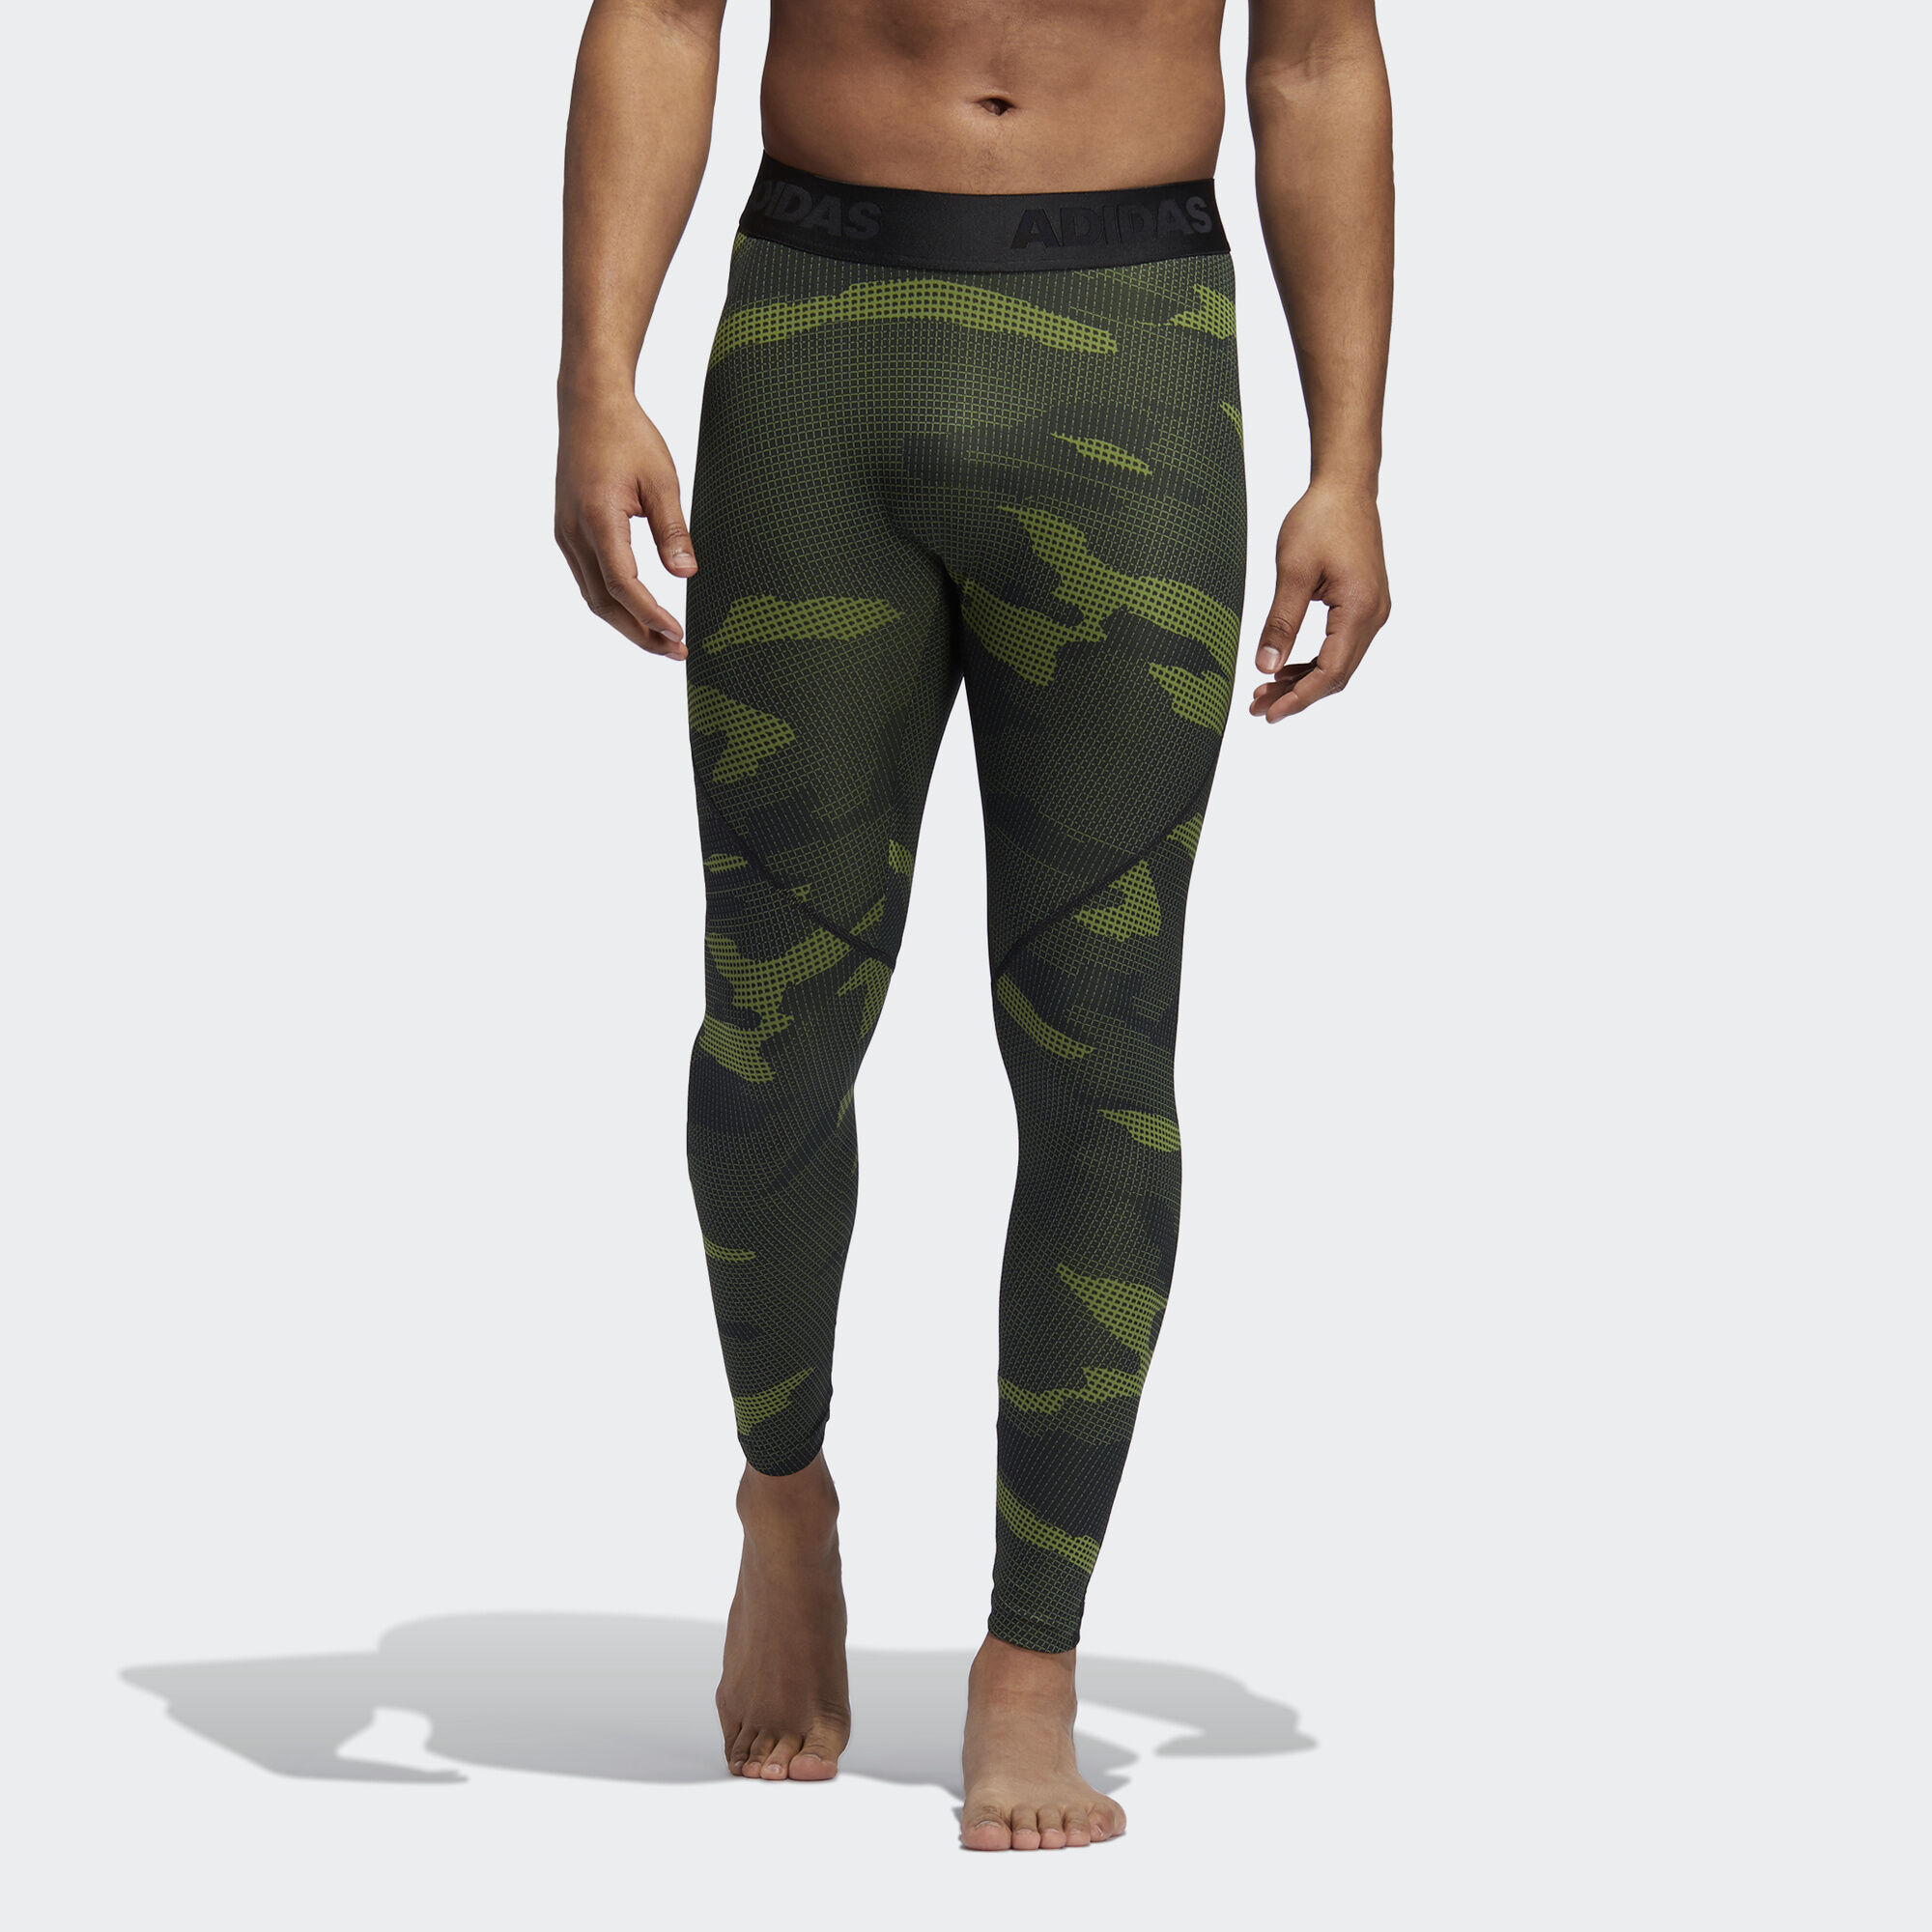 Леггинсы для фитнеса Alphaskin Camouflage adidas Performance